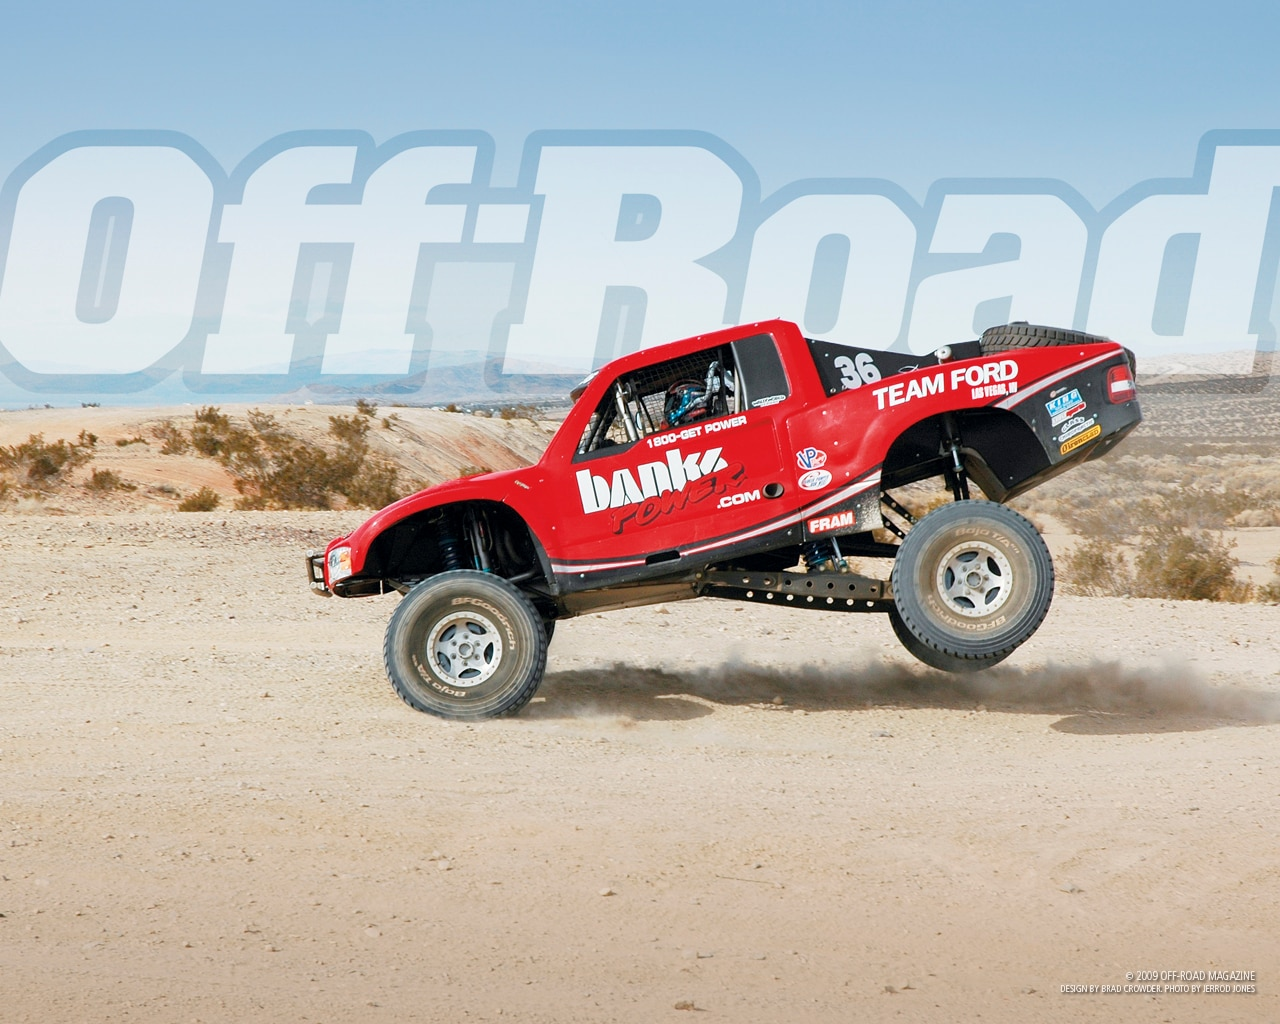 0909or z+wallpaper+banks trophy truck 1280x1024